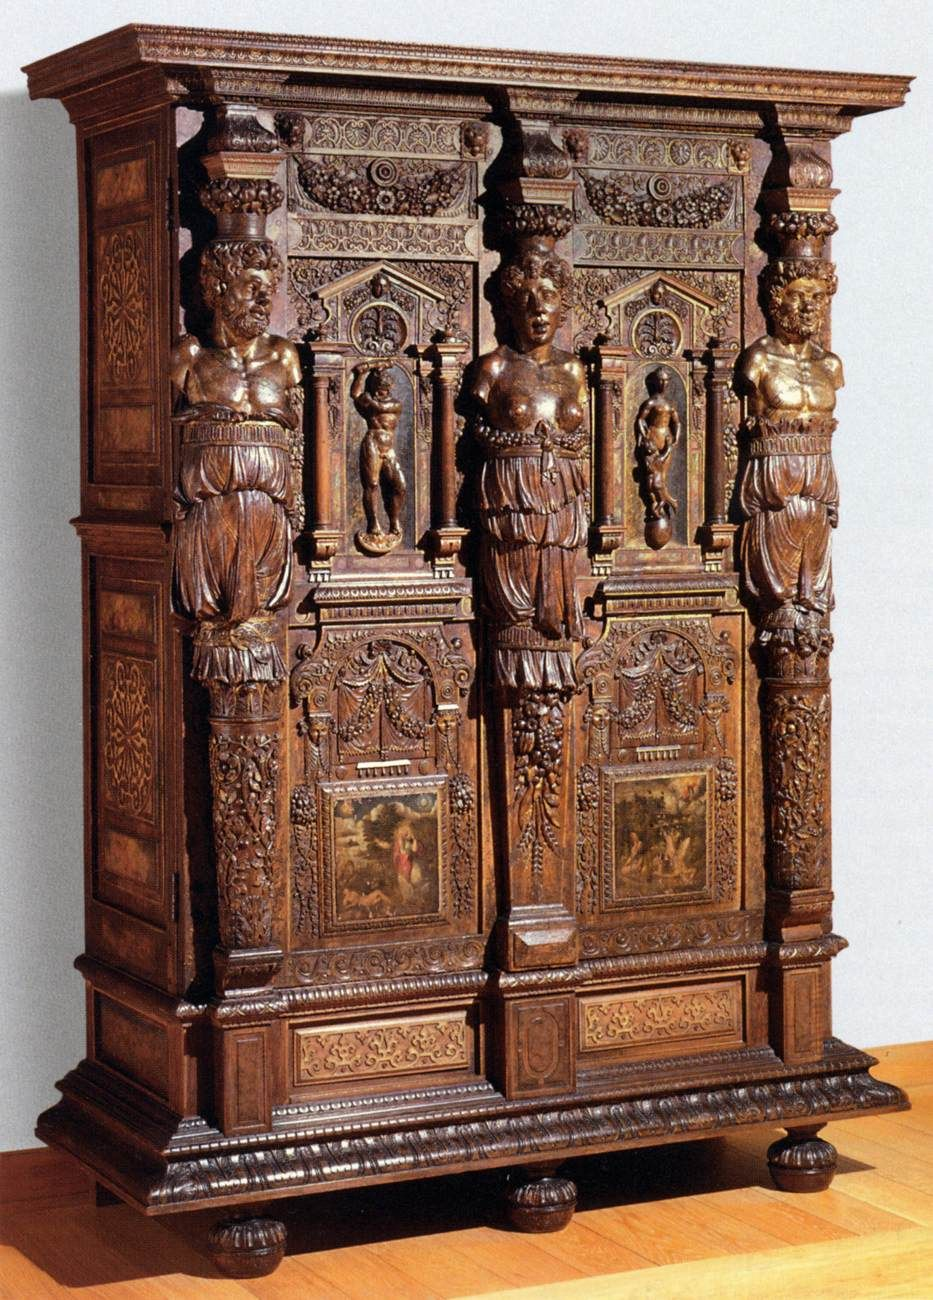 UNKNOWN CABINETMAKER, French Armoir 1580 Walnut and oak, partly gilt and painted, 206 x 150 x 60 cm Musée du Louvre, Paris